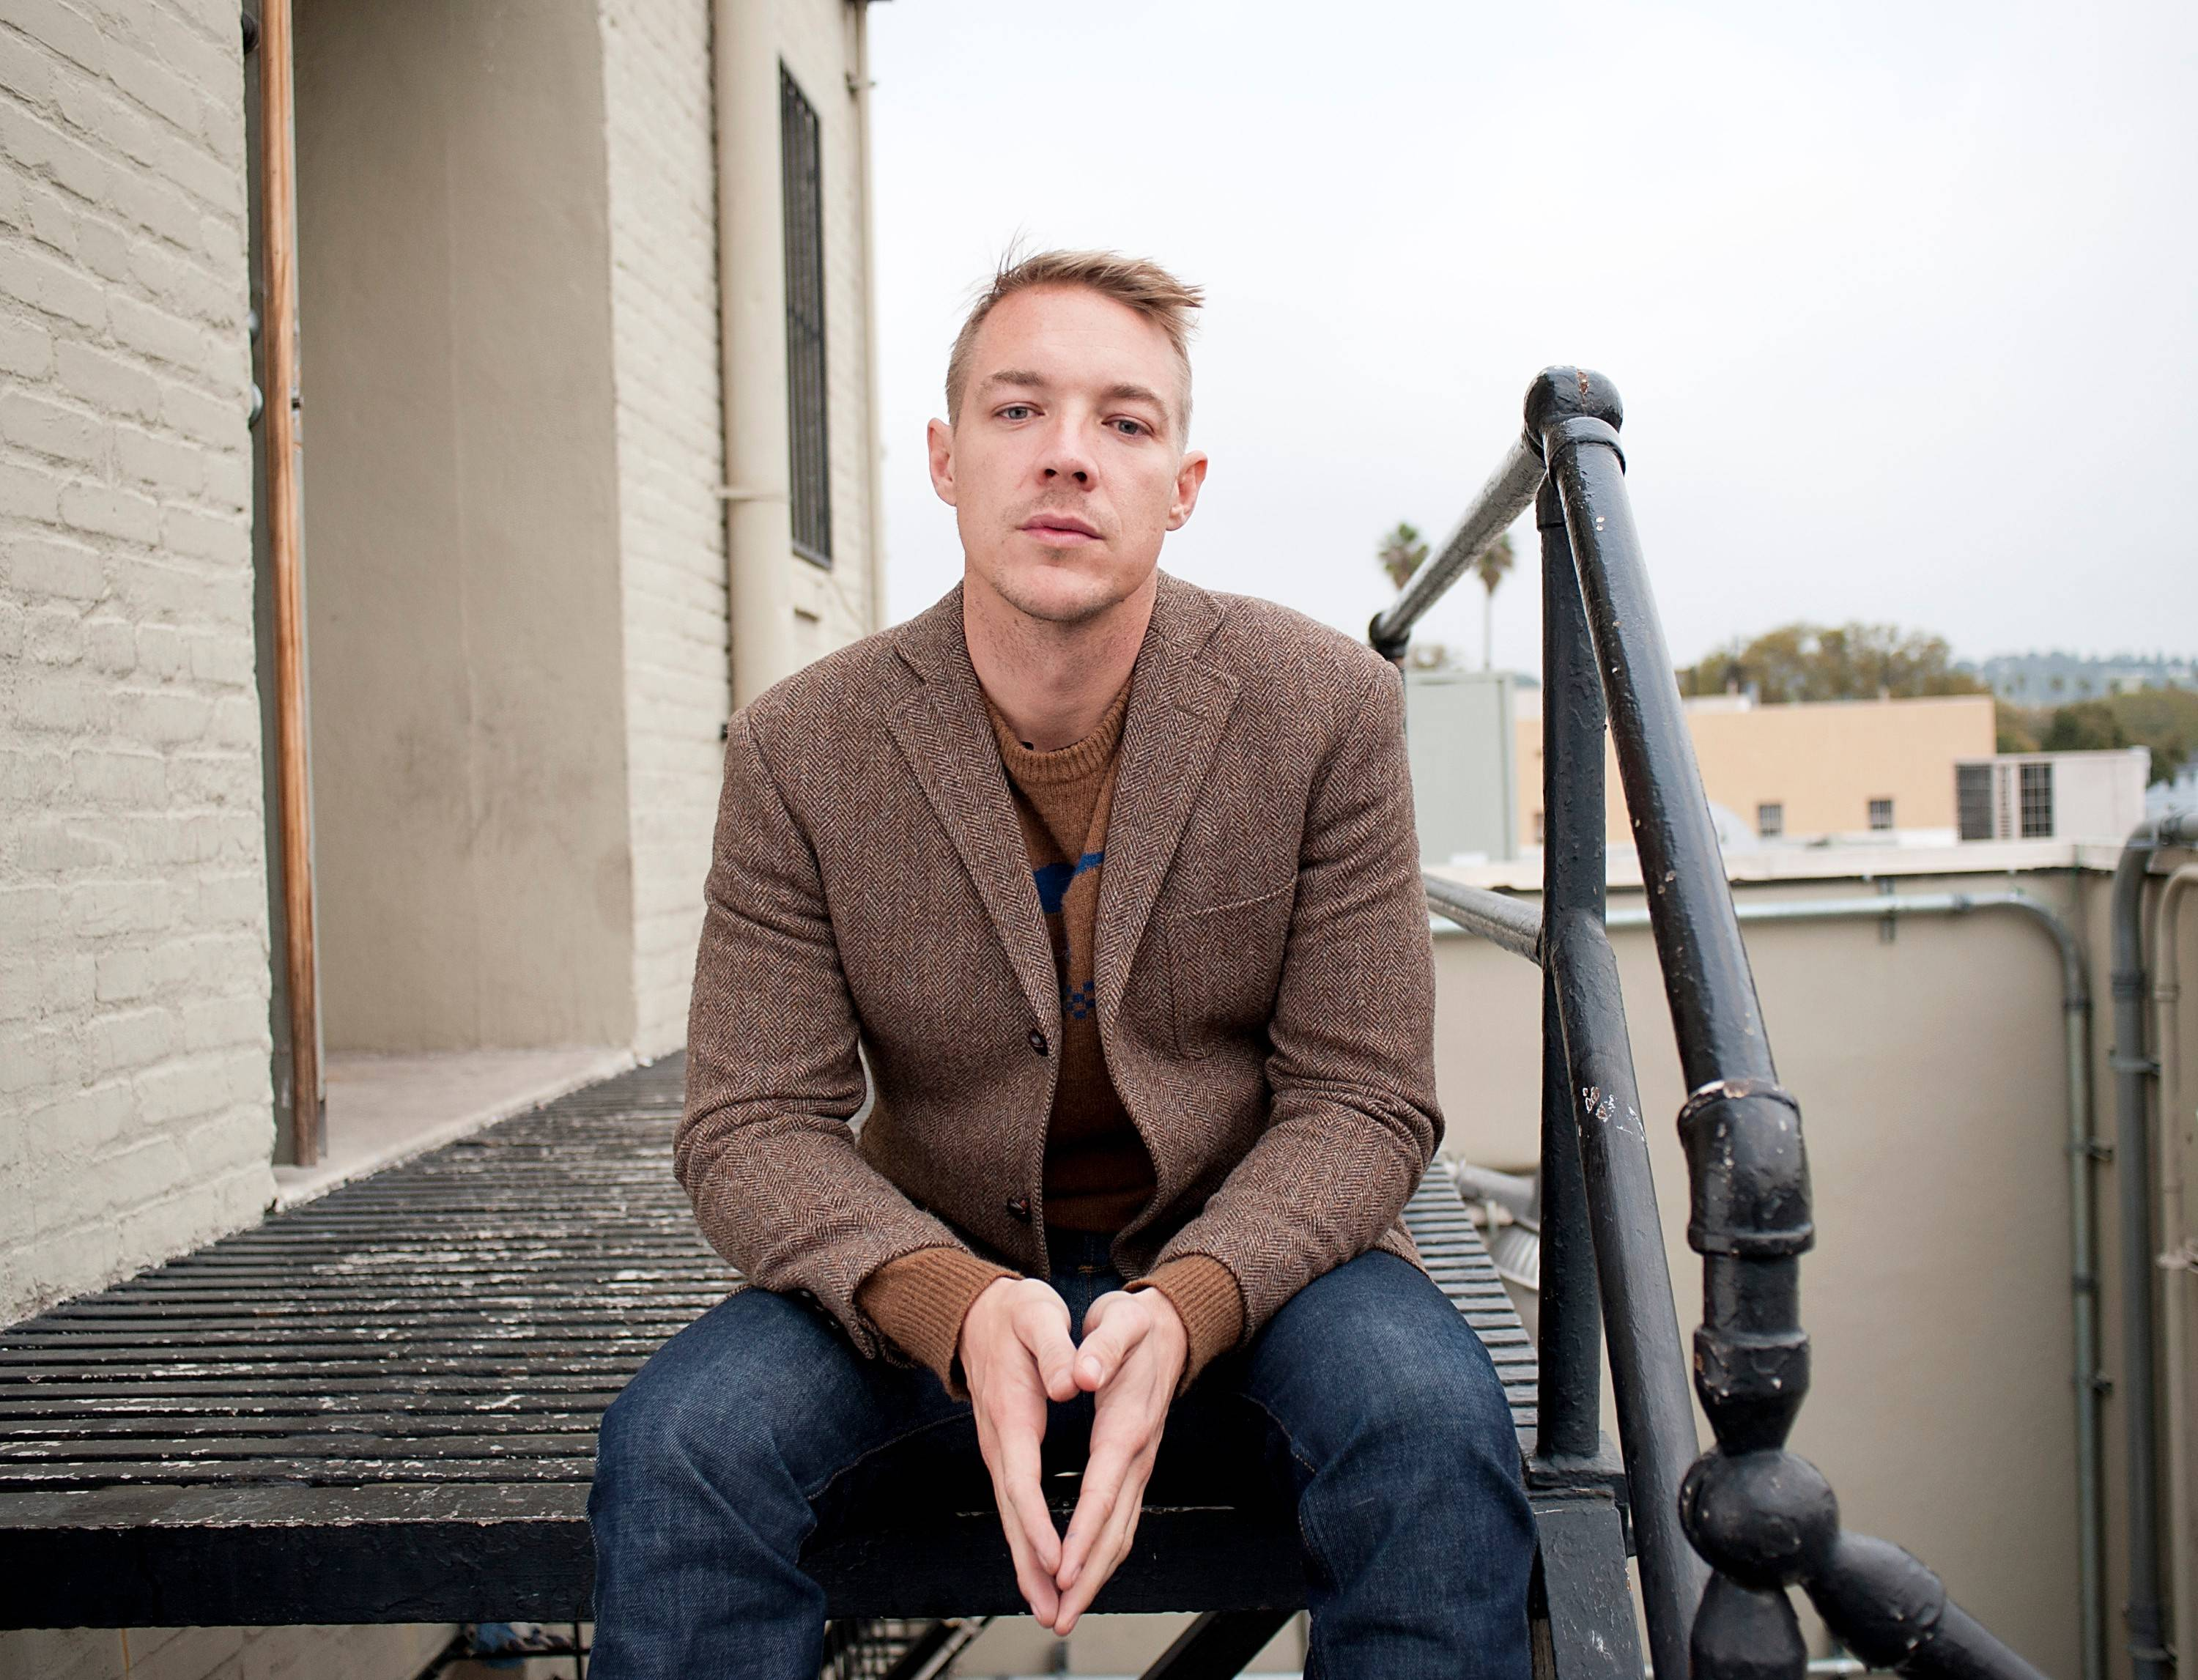 DJ and music producer Diplo hopes to make it back to Cuba, despite recently imposed travel restrictions.